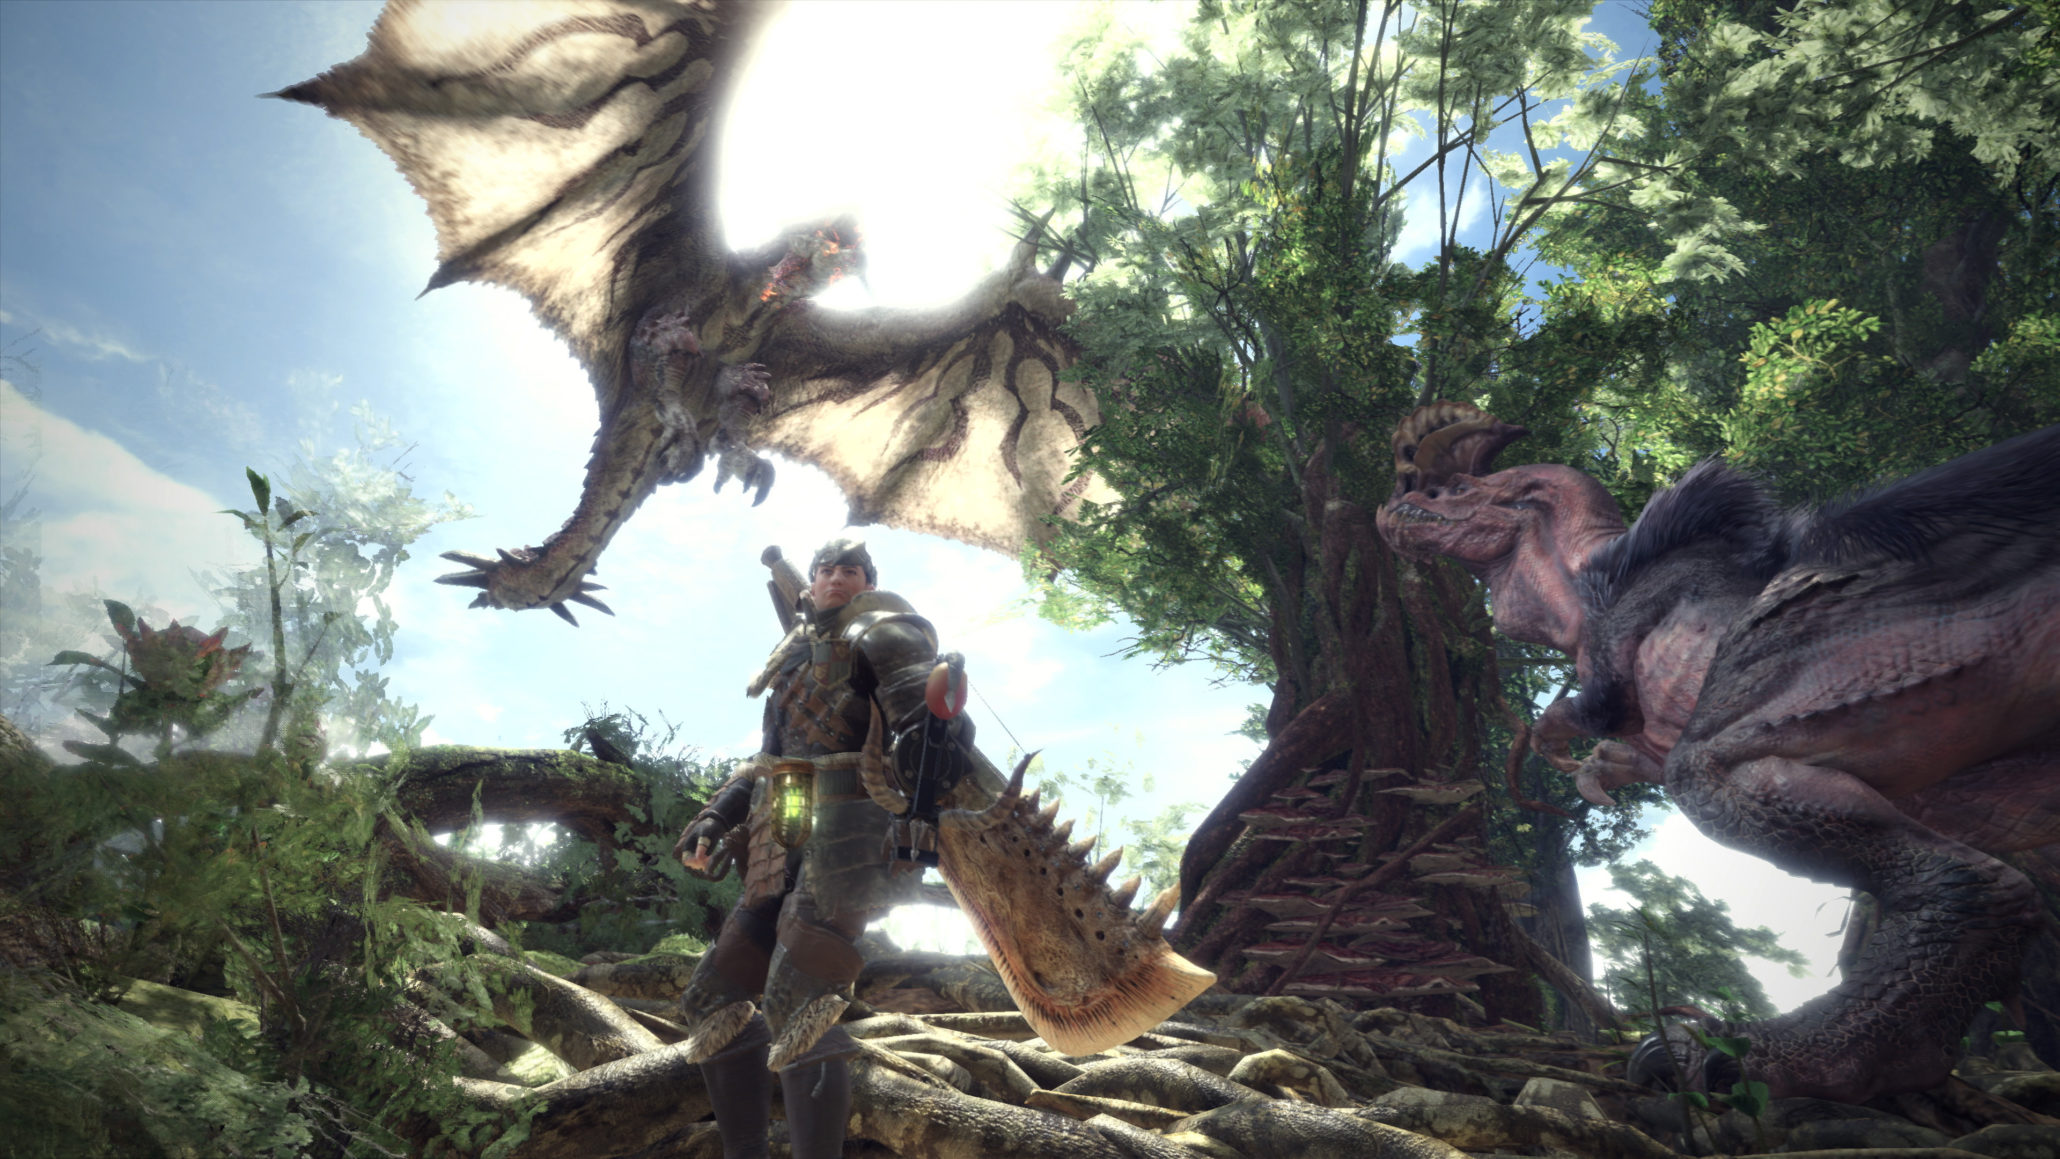 What could Exhibitor Relations Company have in their plans for the Monster Hunter movie?